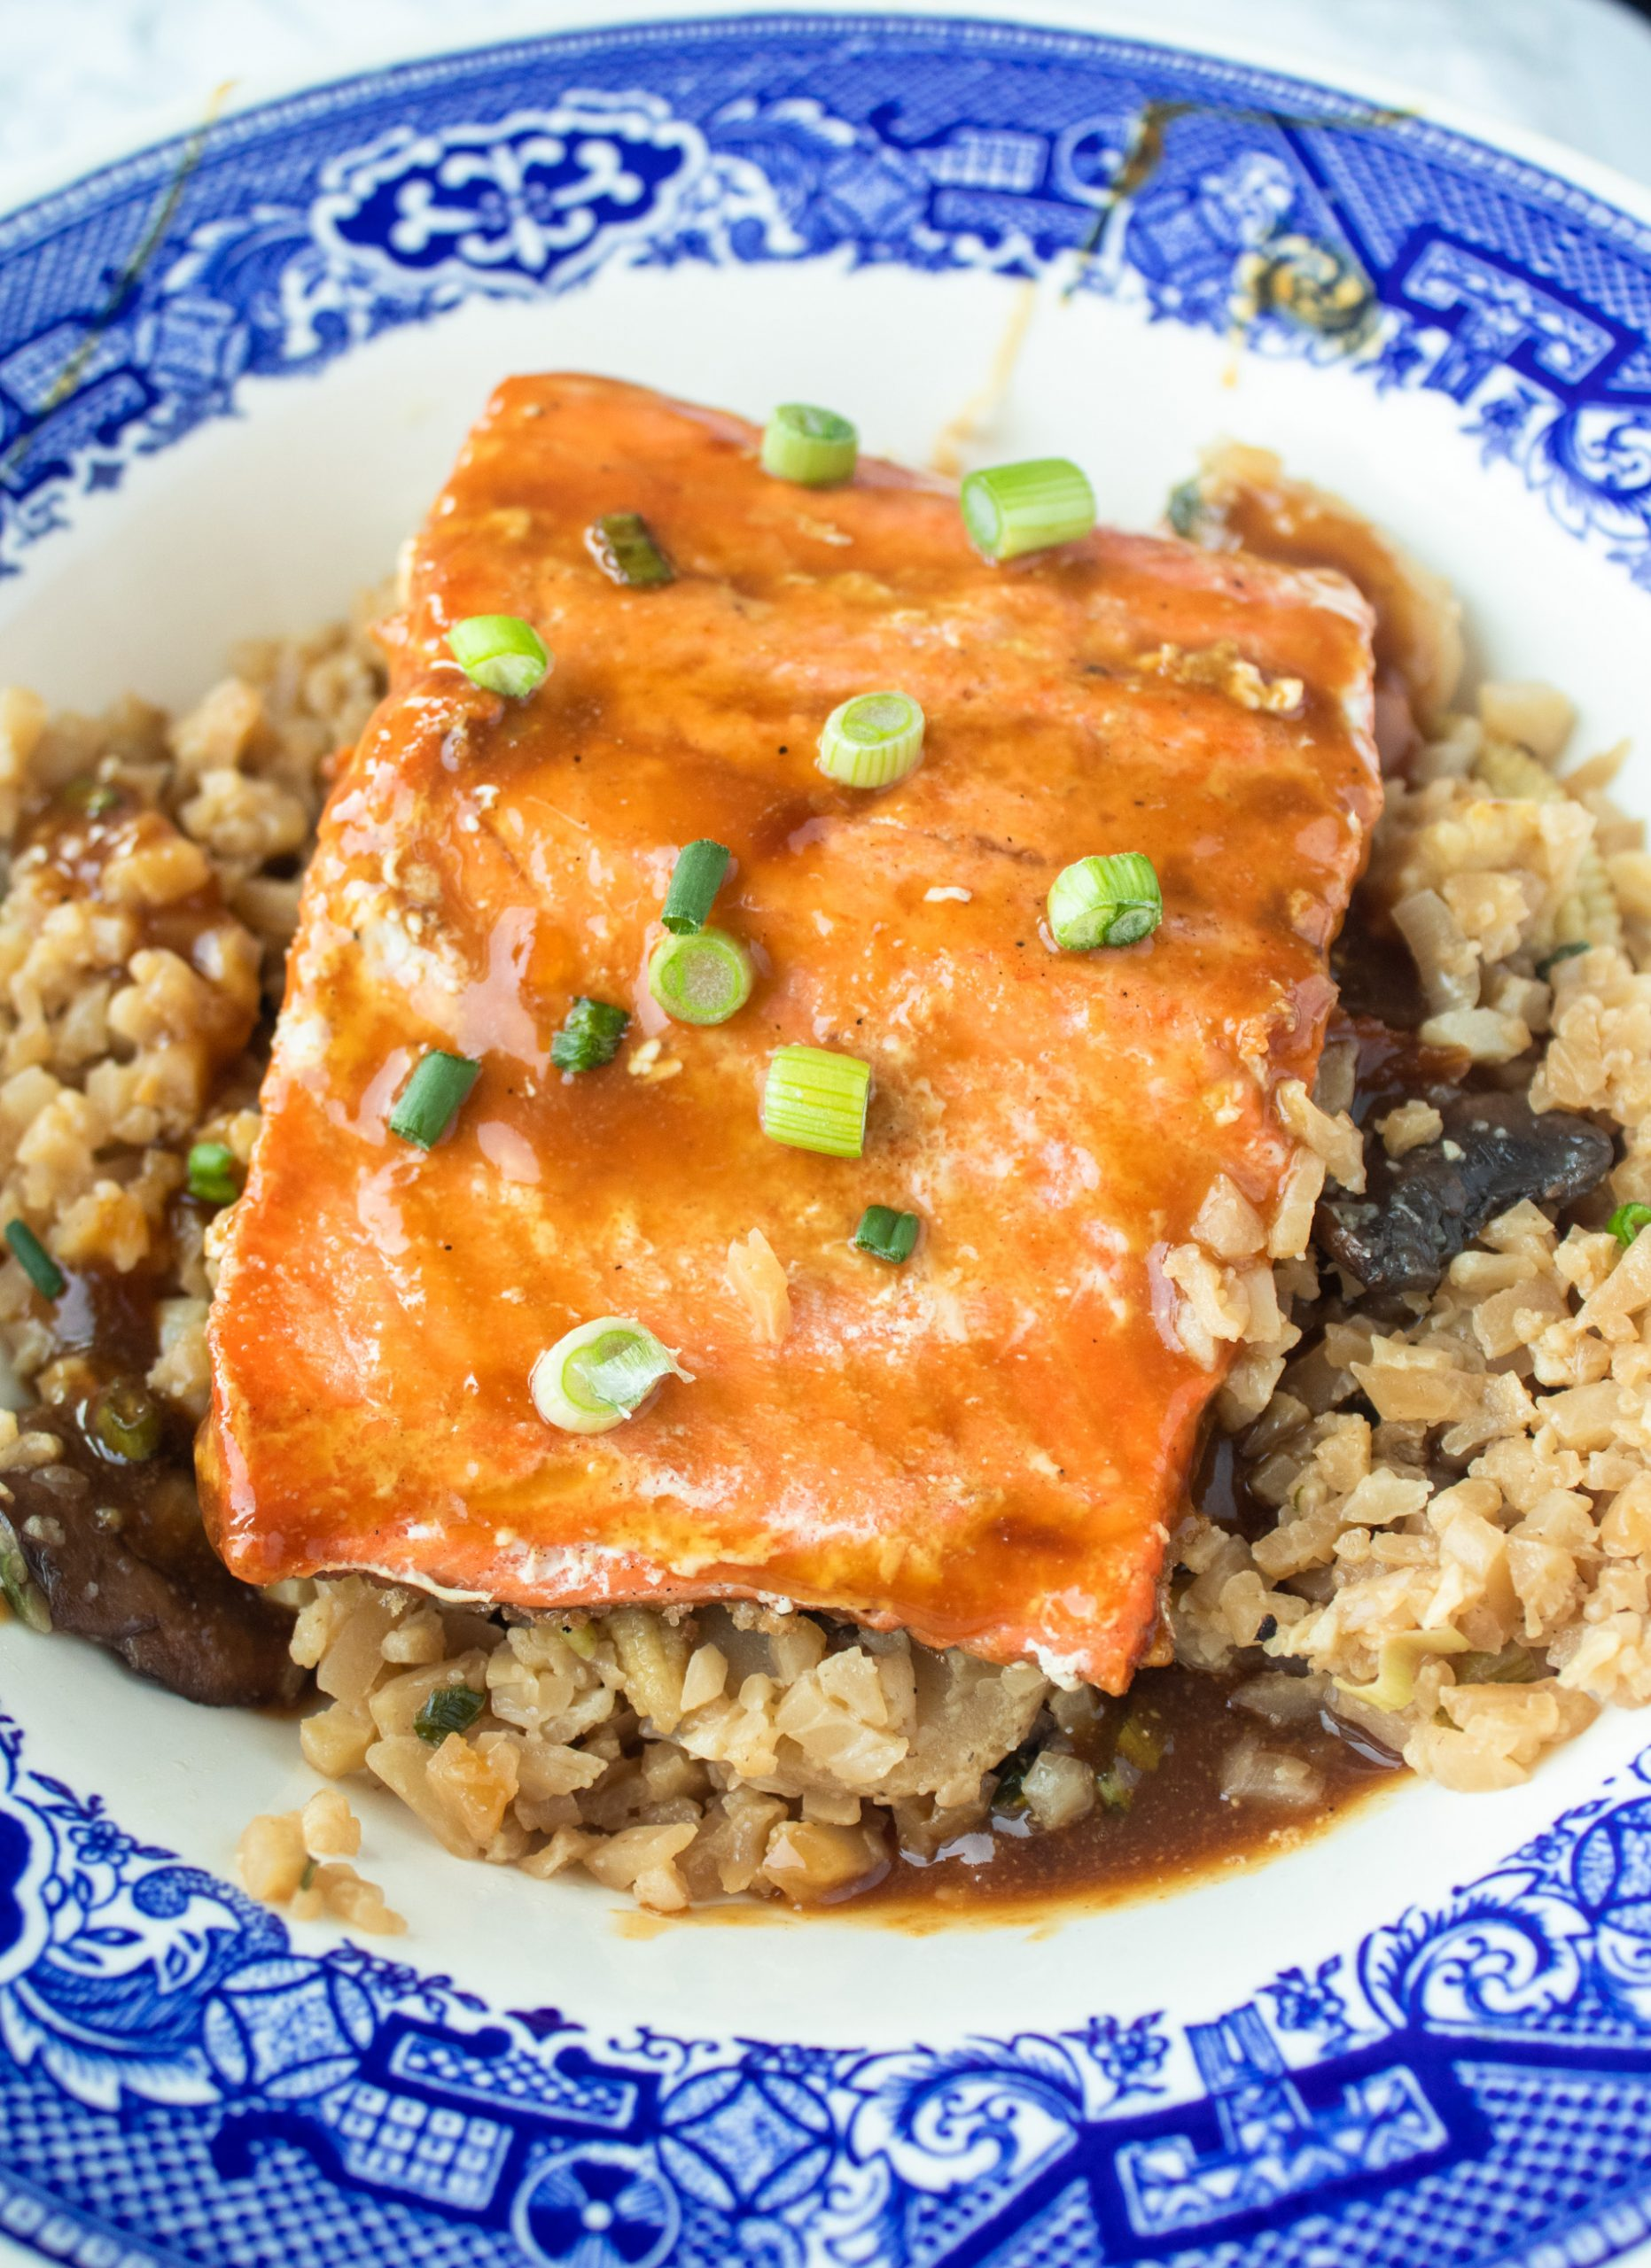 Teriyaki salmon is a one pot keto salmon recipe that is ready in just 15 minutes! Adaptable for paleo and gluten free lifestyles.